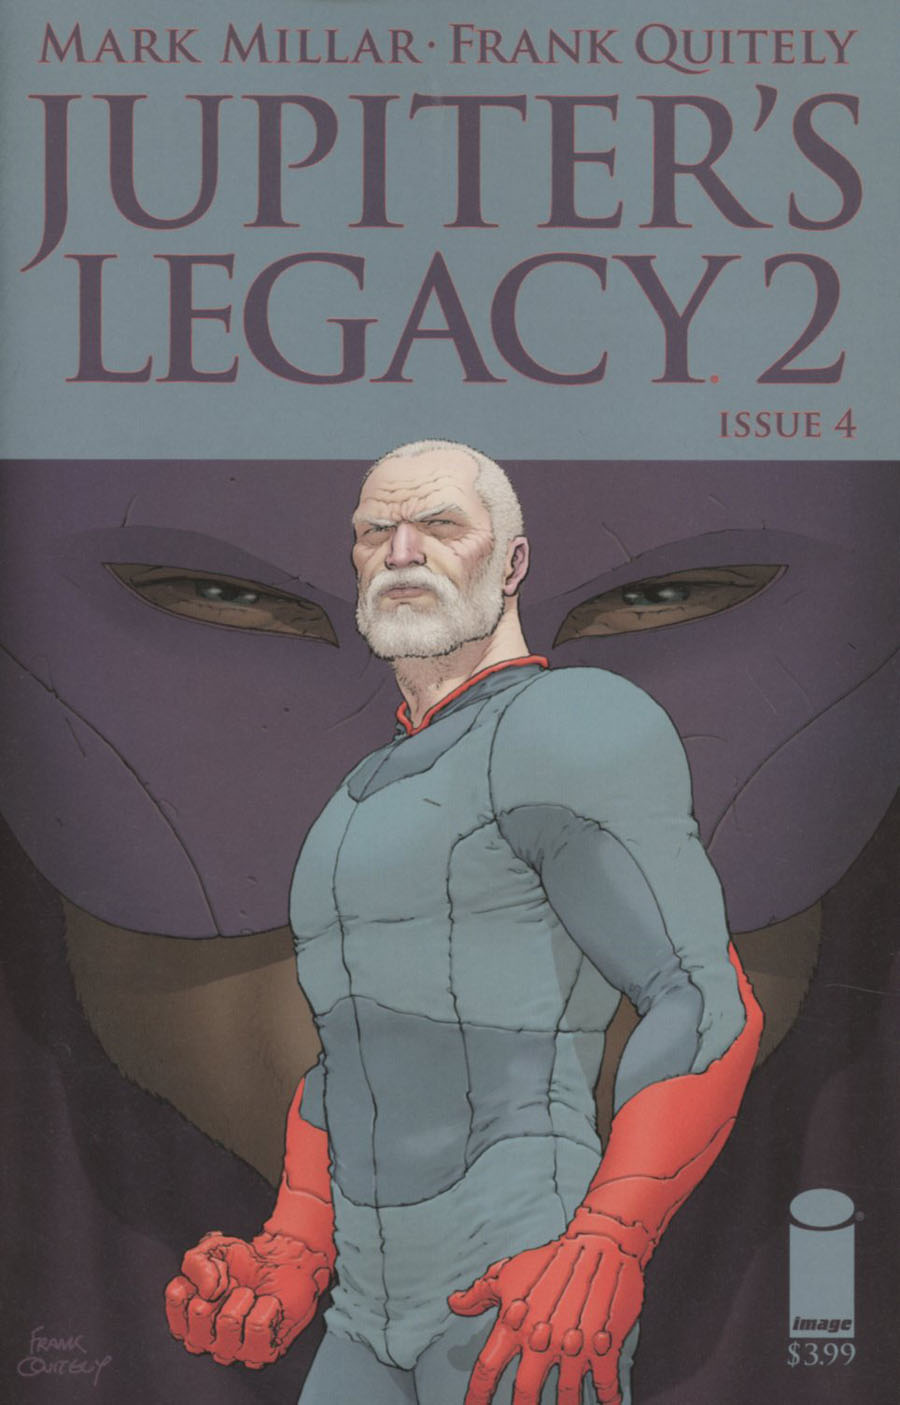 Jupiters Legacy Vol 2 #4 Cover A Regular Frank Quitely Cover